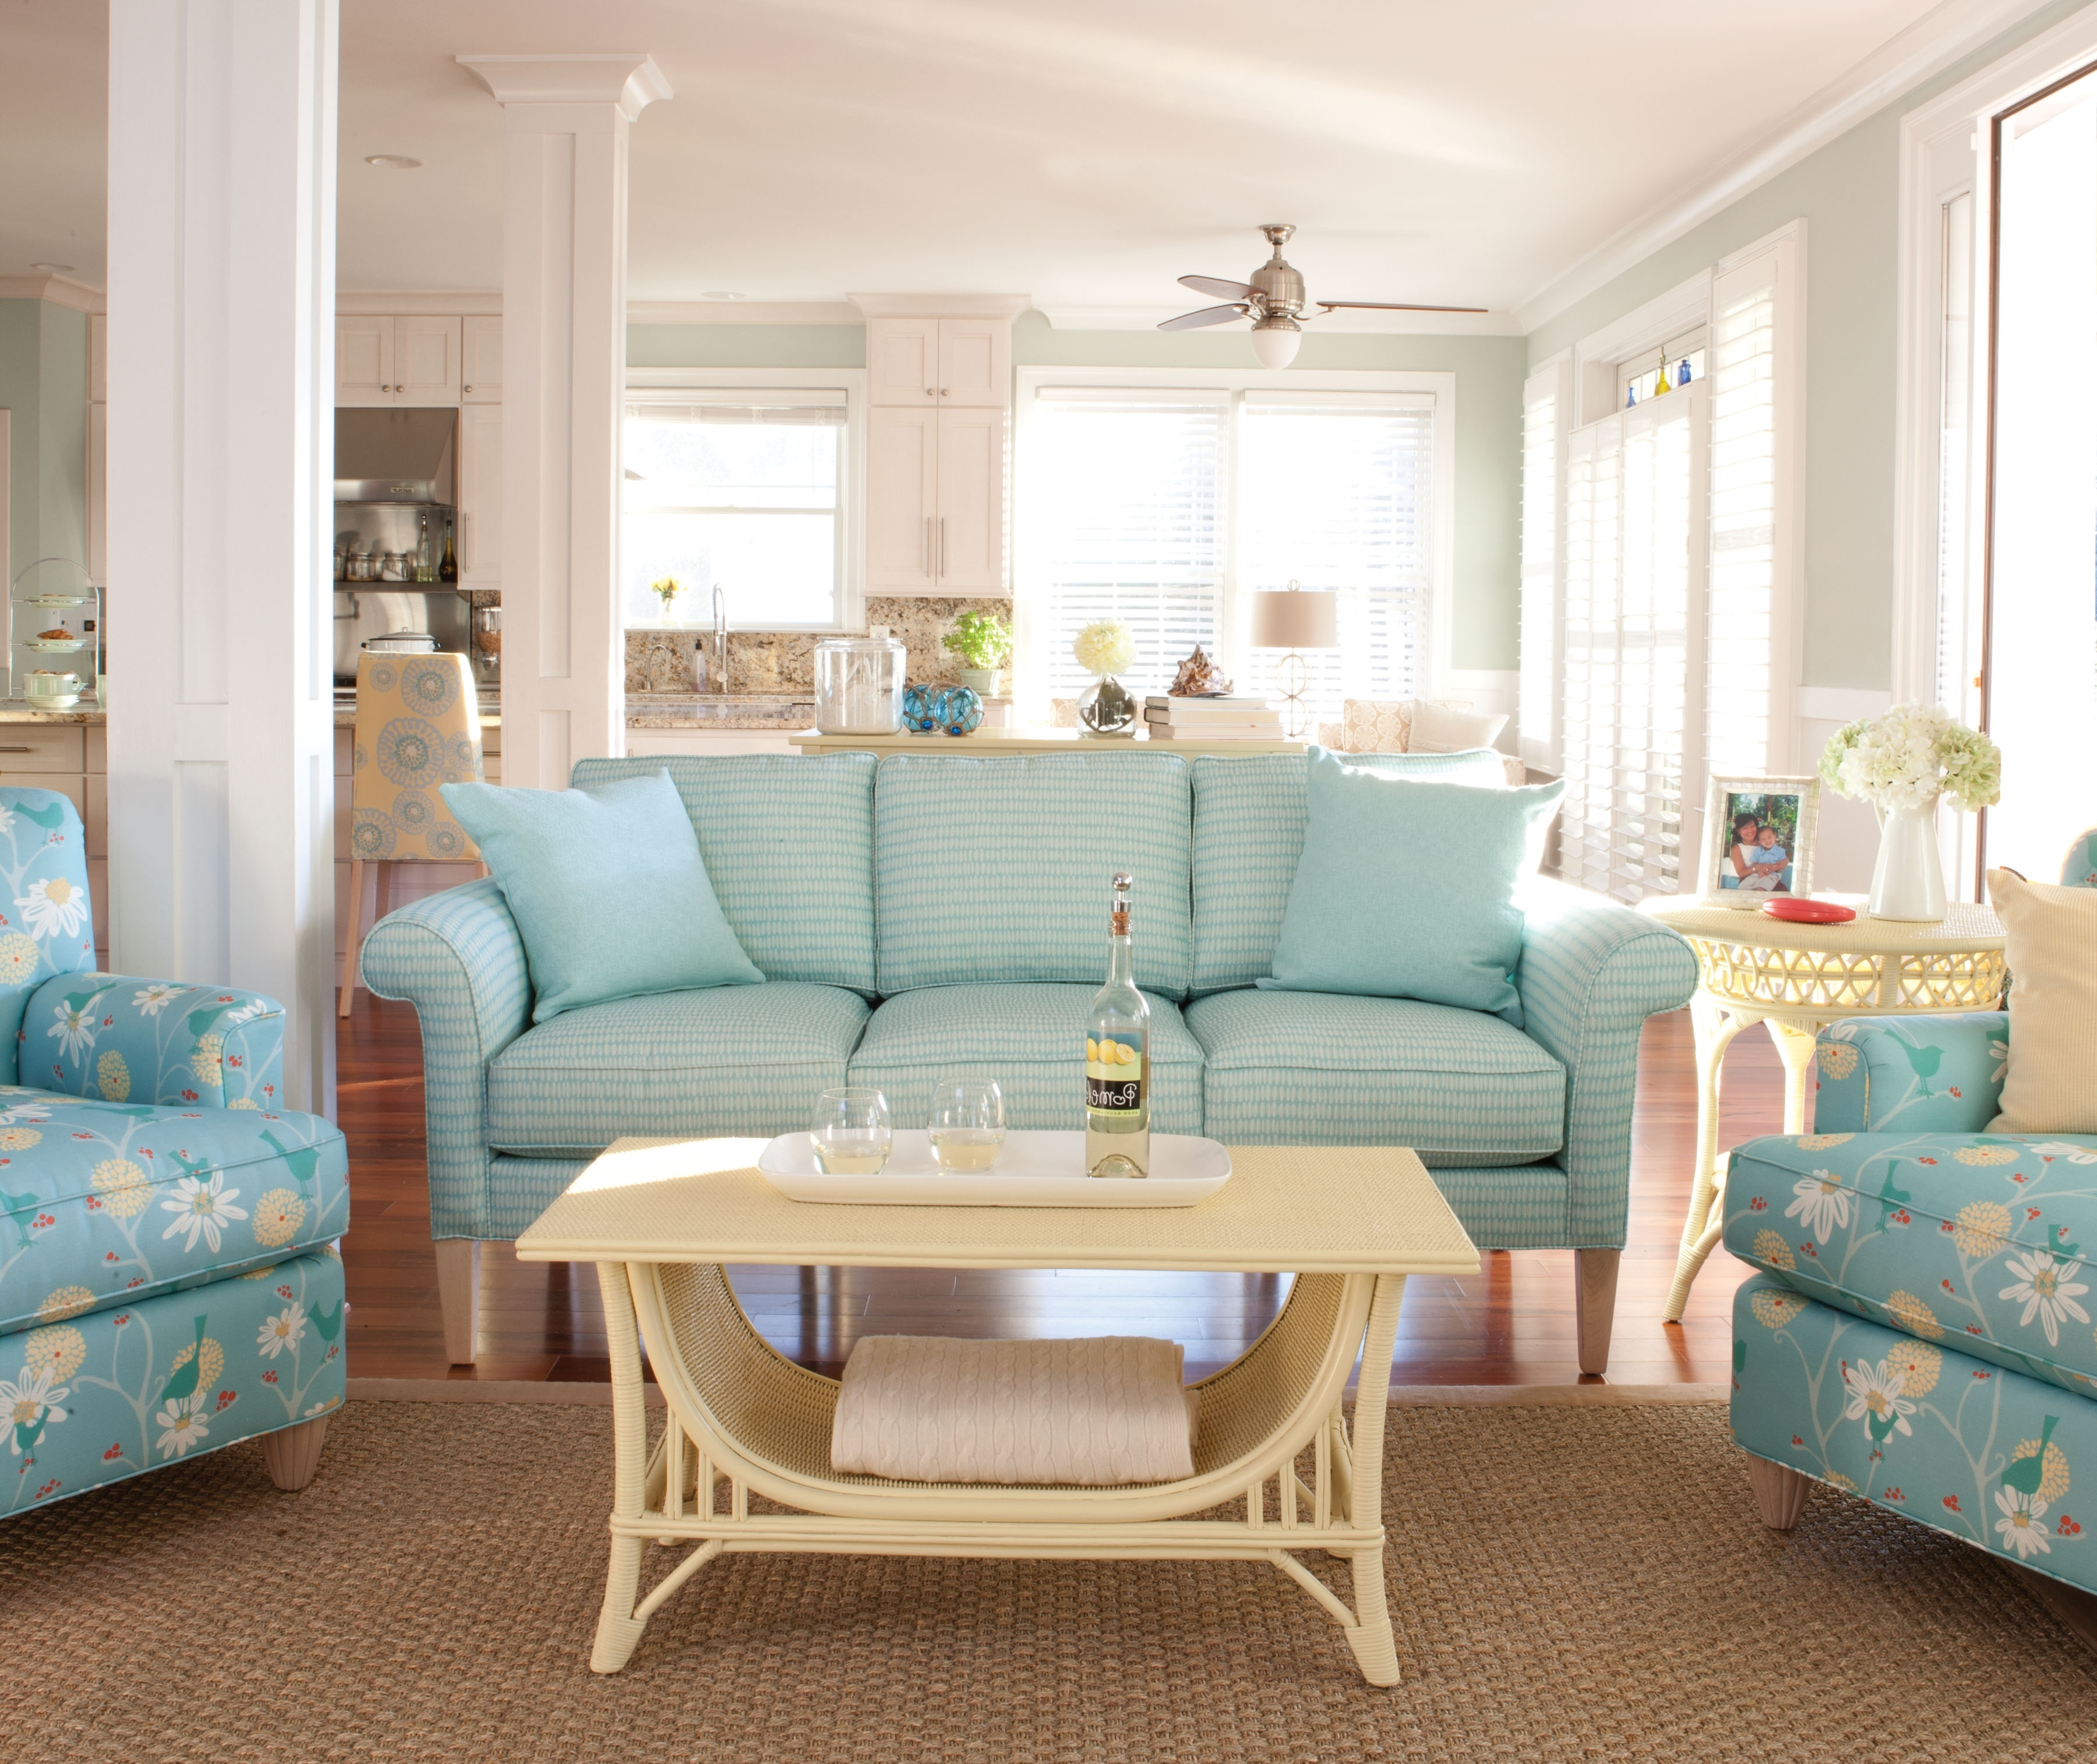 Widely Used Country Cottage Sofas And Chairs – Lightingridgecellars In Cottage Style Sofas And Chairs (View 15 of 15)